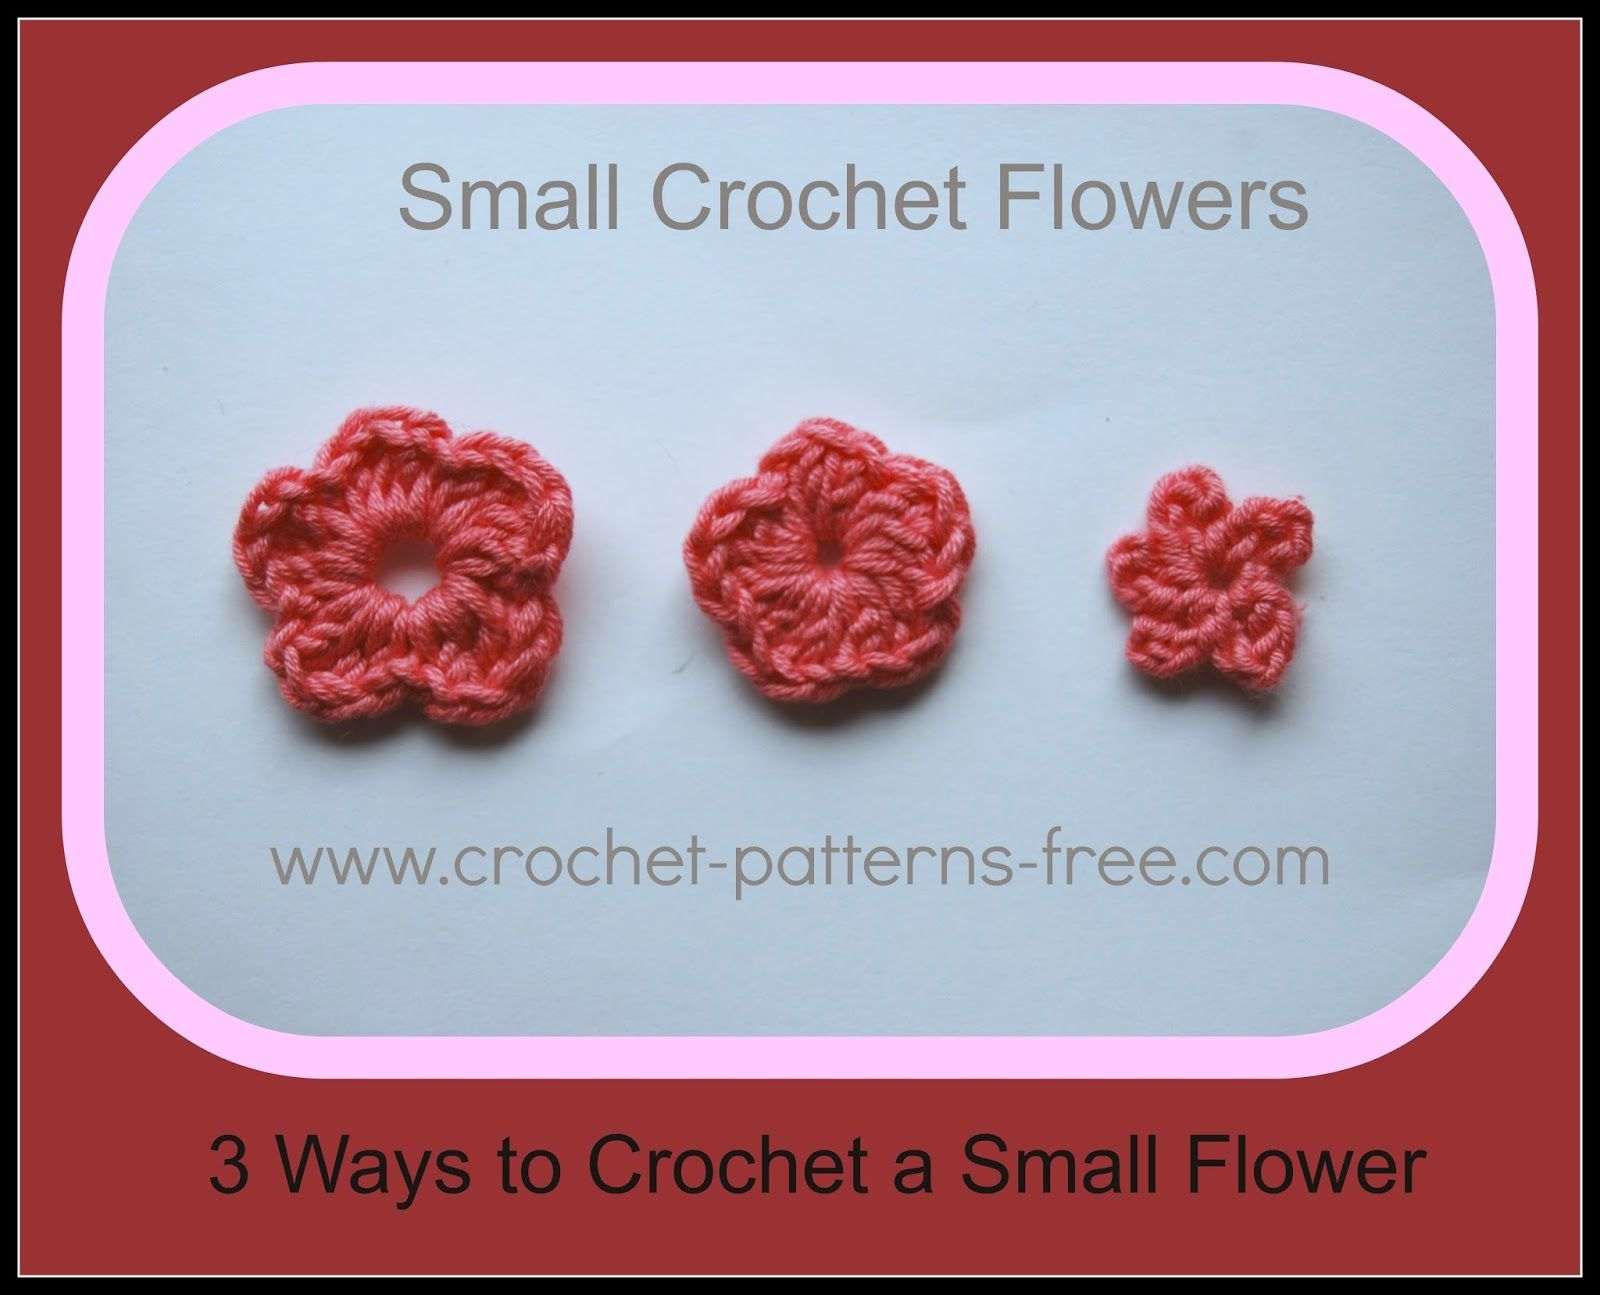 Small Crochet Flower Patterns Free Crochet Patterns Crochet Flowers Free Pattern Crochet Flowers Crochet Small Flower